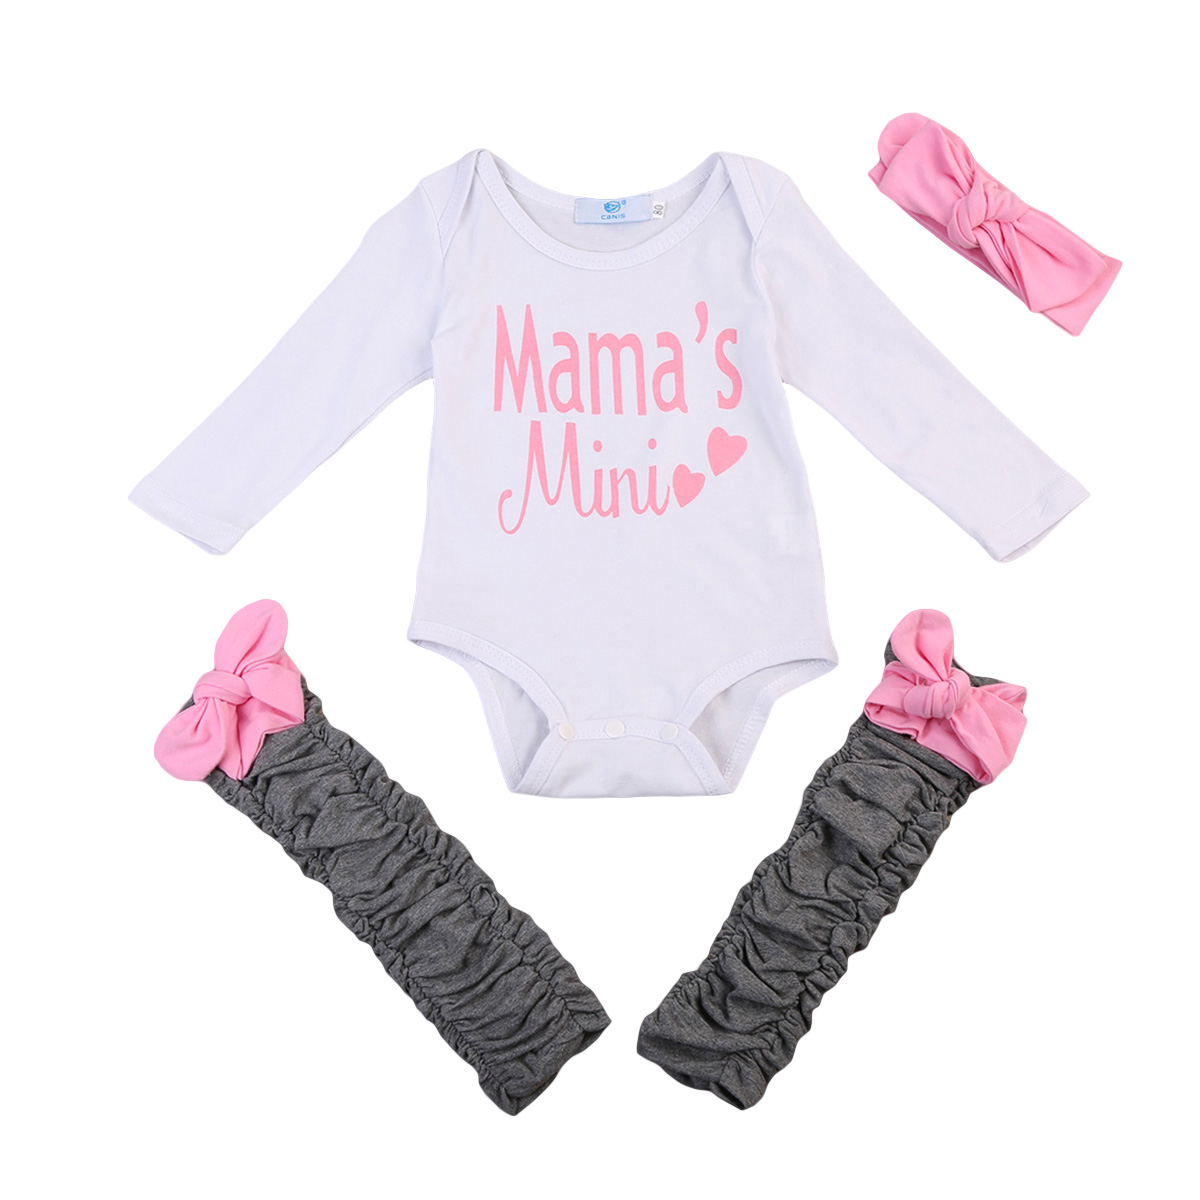 0 to 24M Newborn Baby Girls Clothes Long Sleeve Romper Leg Warmers Headband Outfits 3PCS Baby Clothing Set